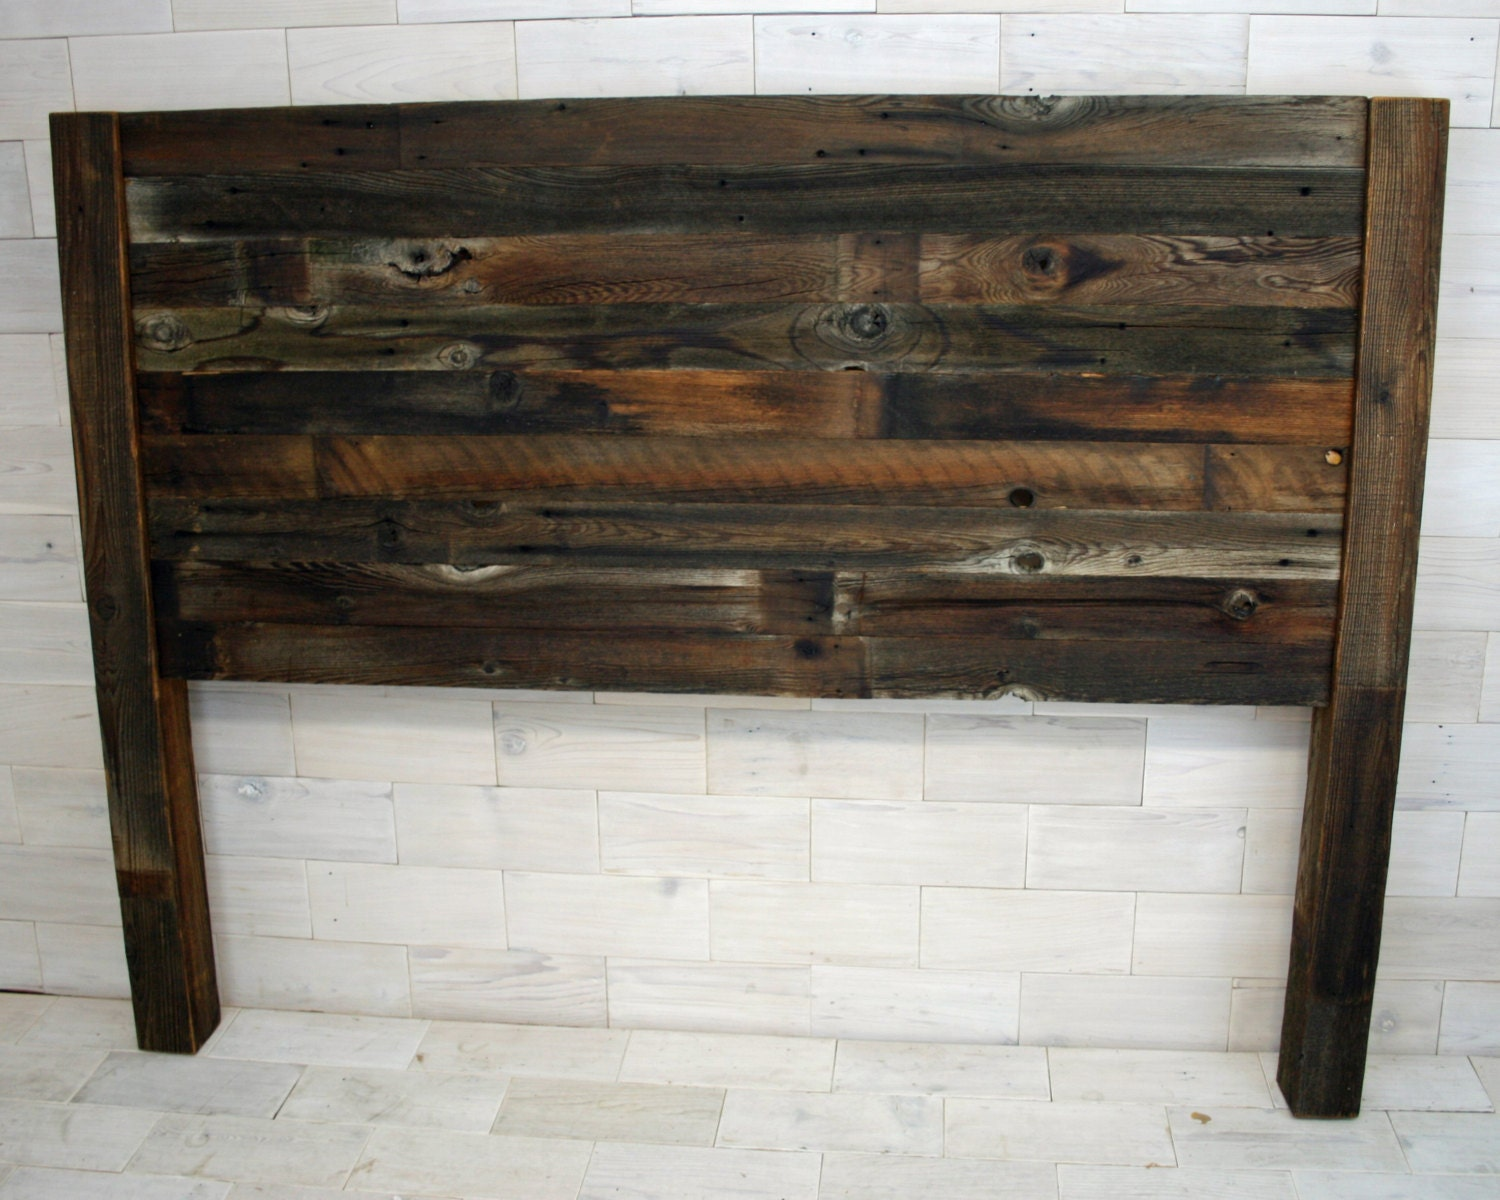 headboard make wood headboards decorate tos a rustic to diy wooden build how decorating and